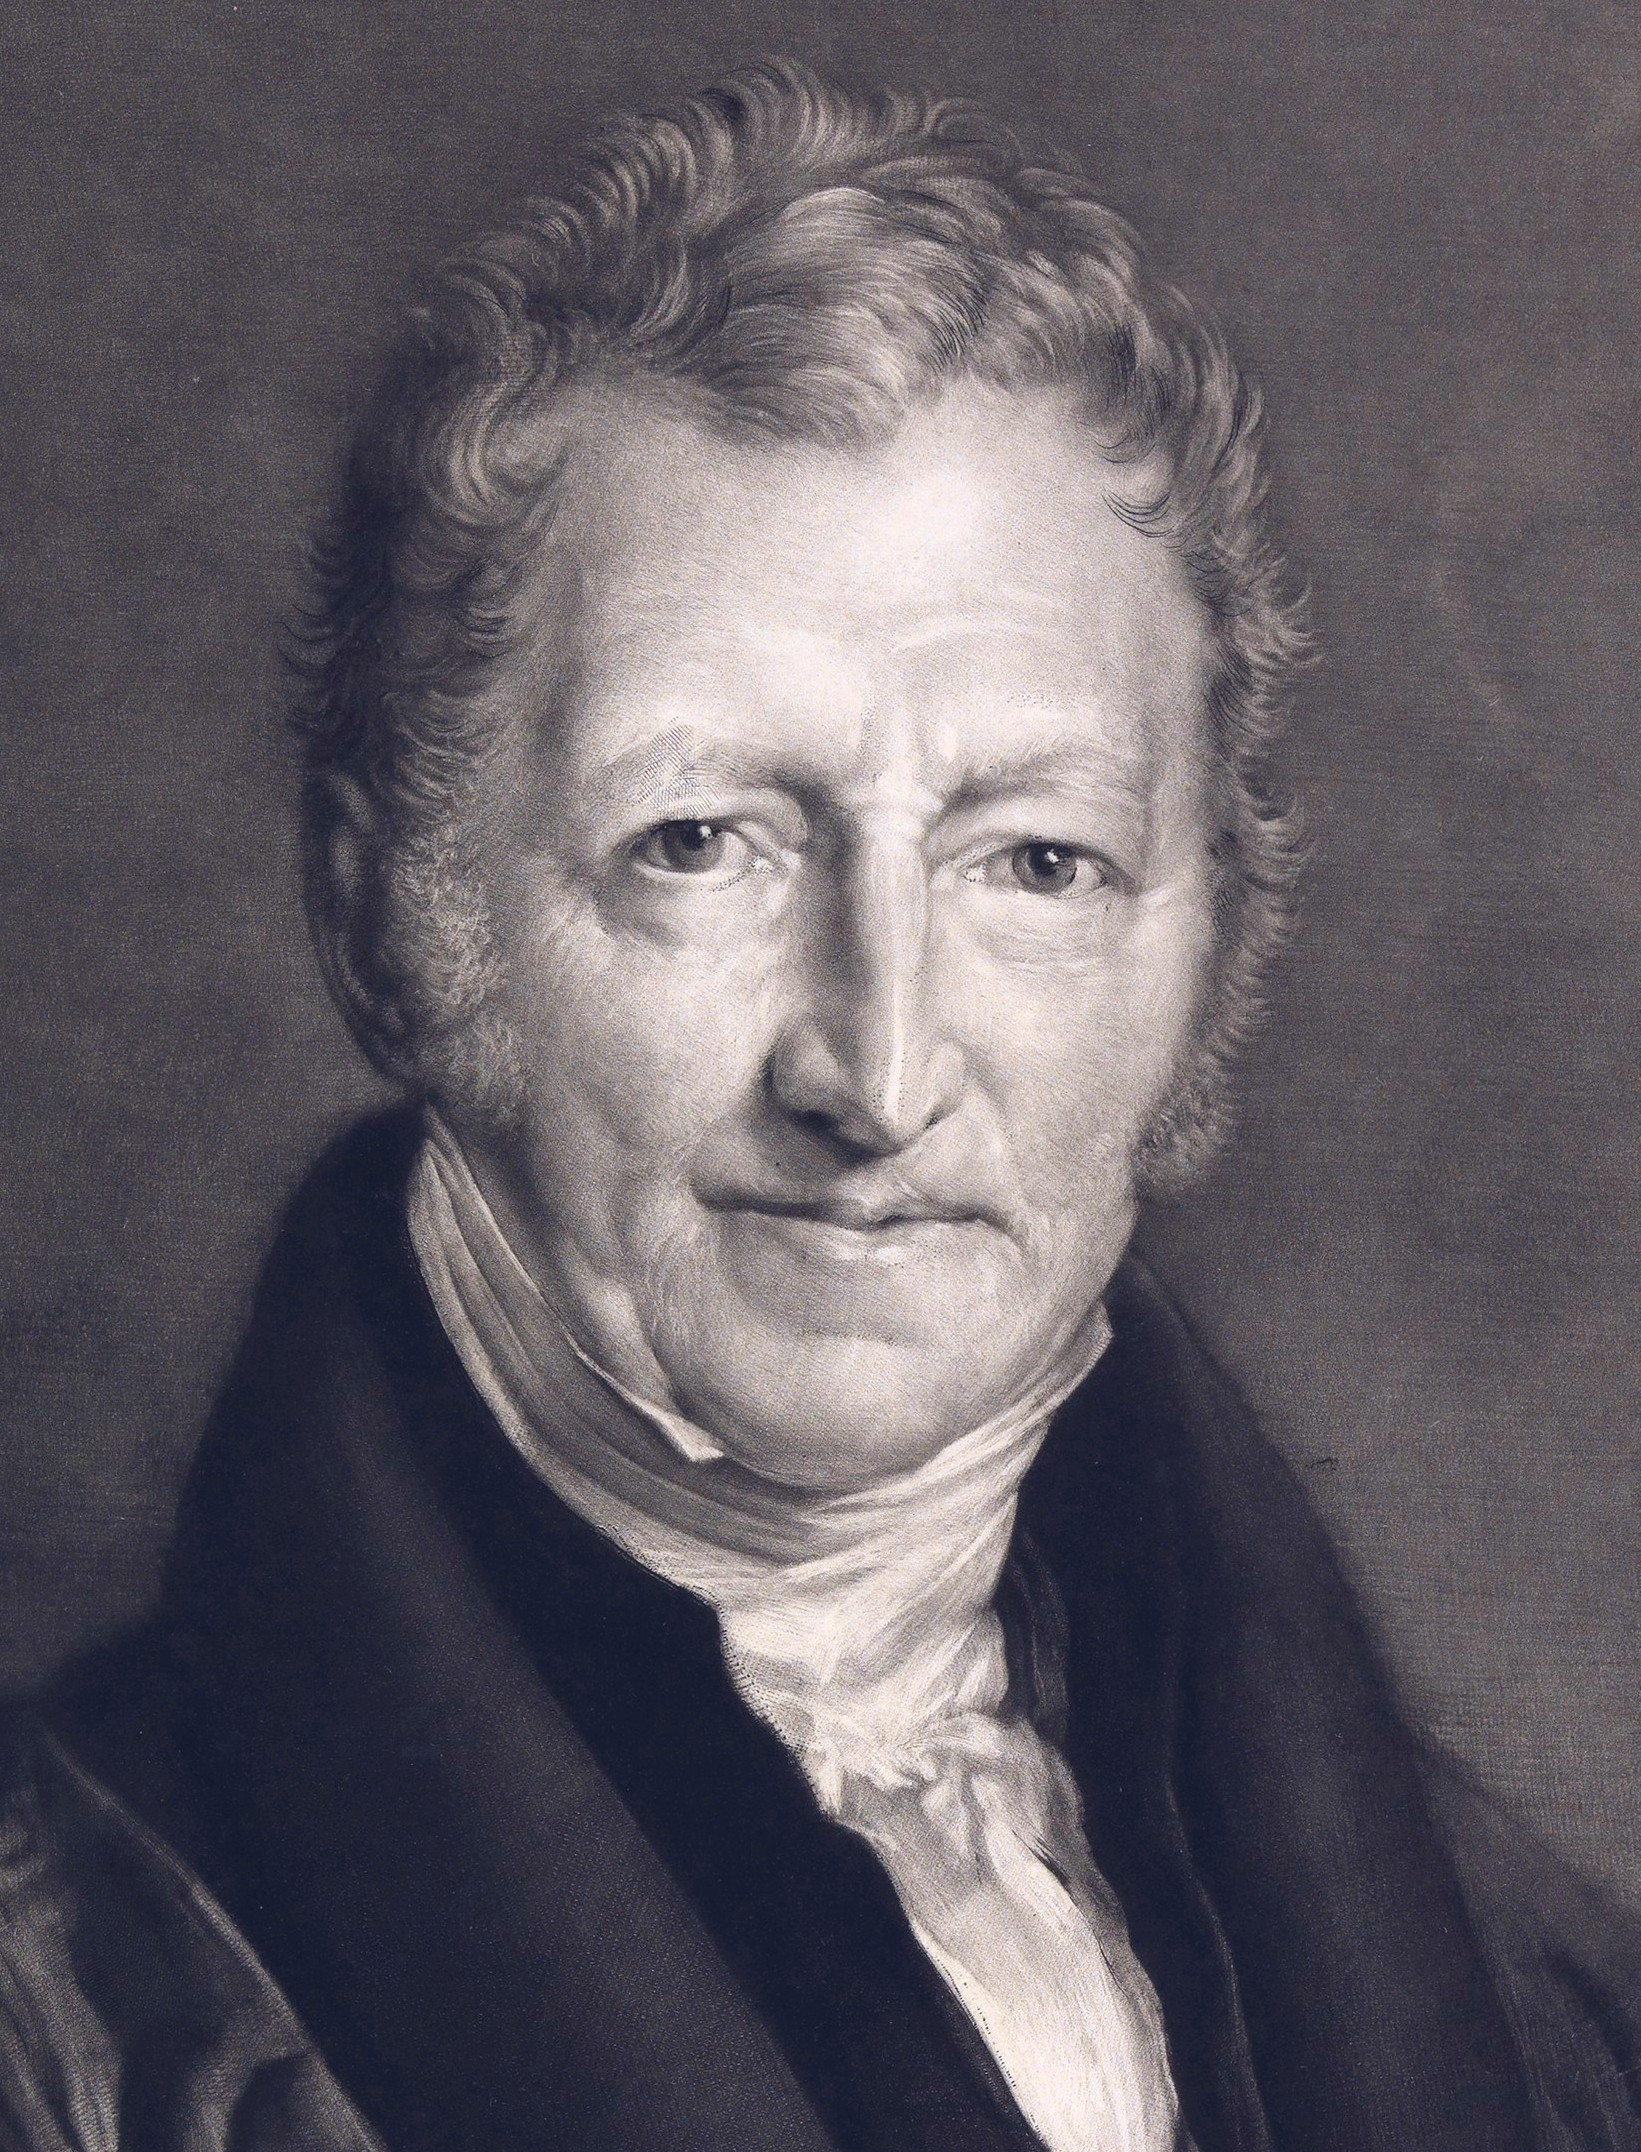 Thomas Malthus. Like Alan Greenspan, but with less interest rate reductions and more smallpox.